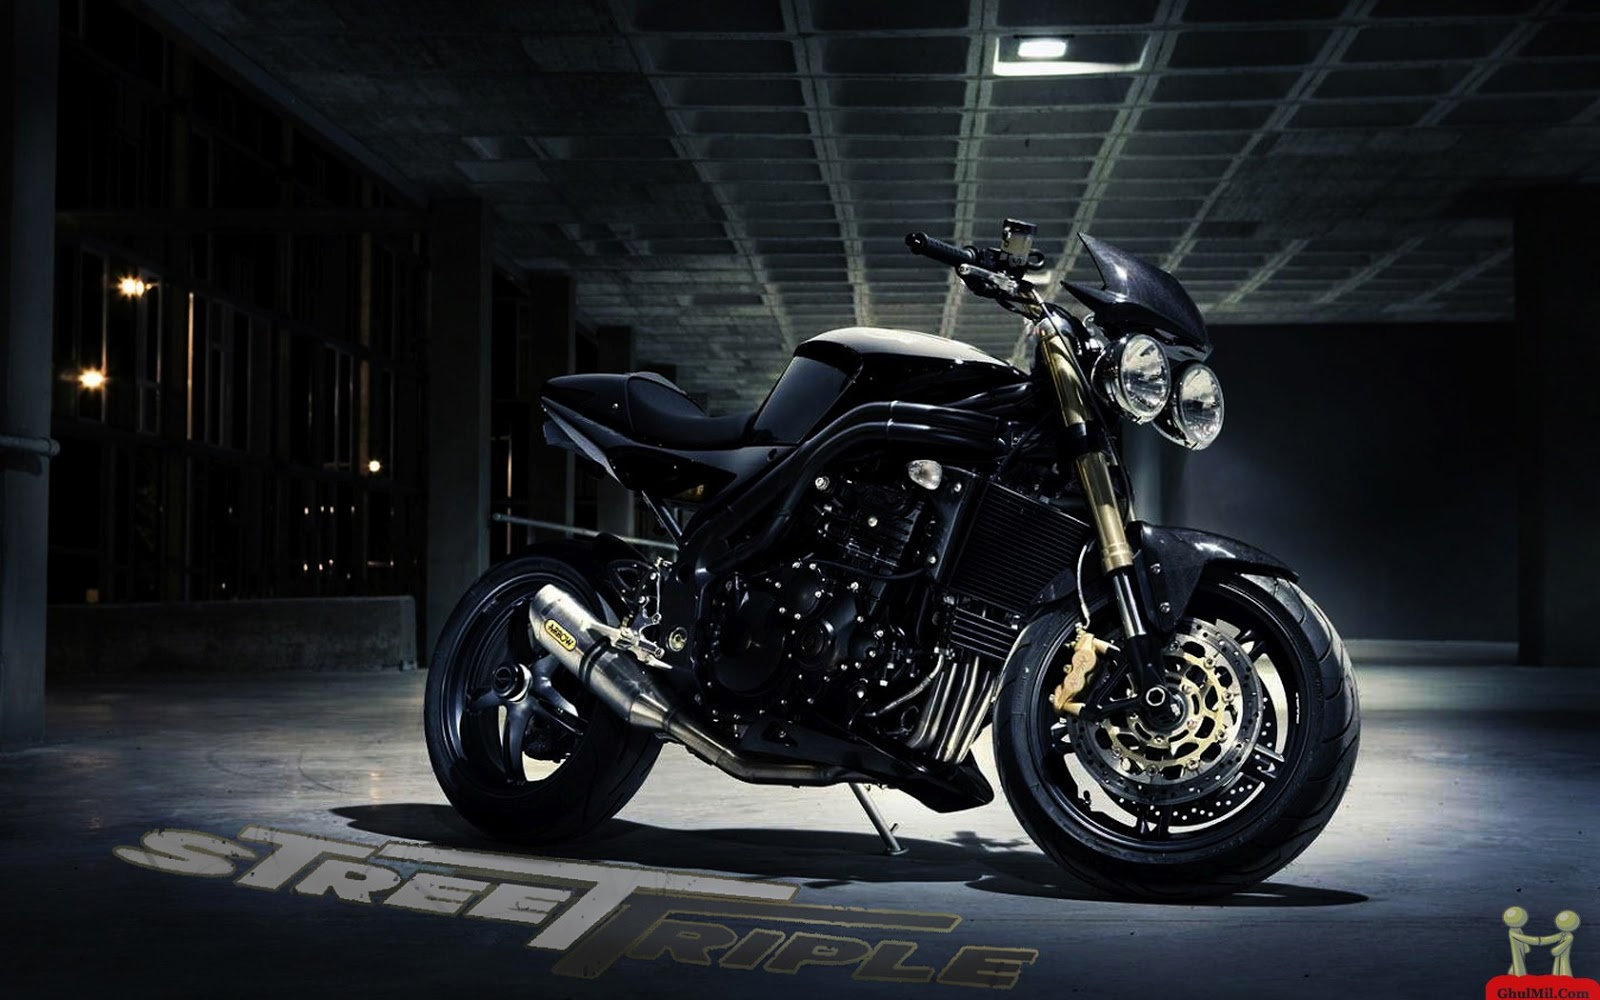 http://4.bp.blogspot.com/-MSs8TdBidBk/UMzGxEnLkEI/AAAAAAAACRg/c_ENnYxcmOQ/s1600/latest-heavy-sports-bike-hd-wallpaper-15.jpg